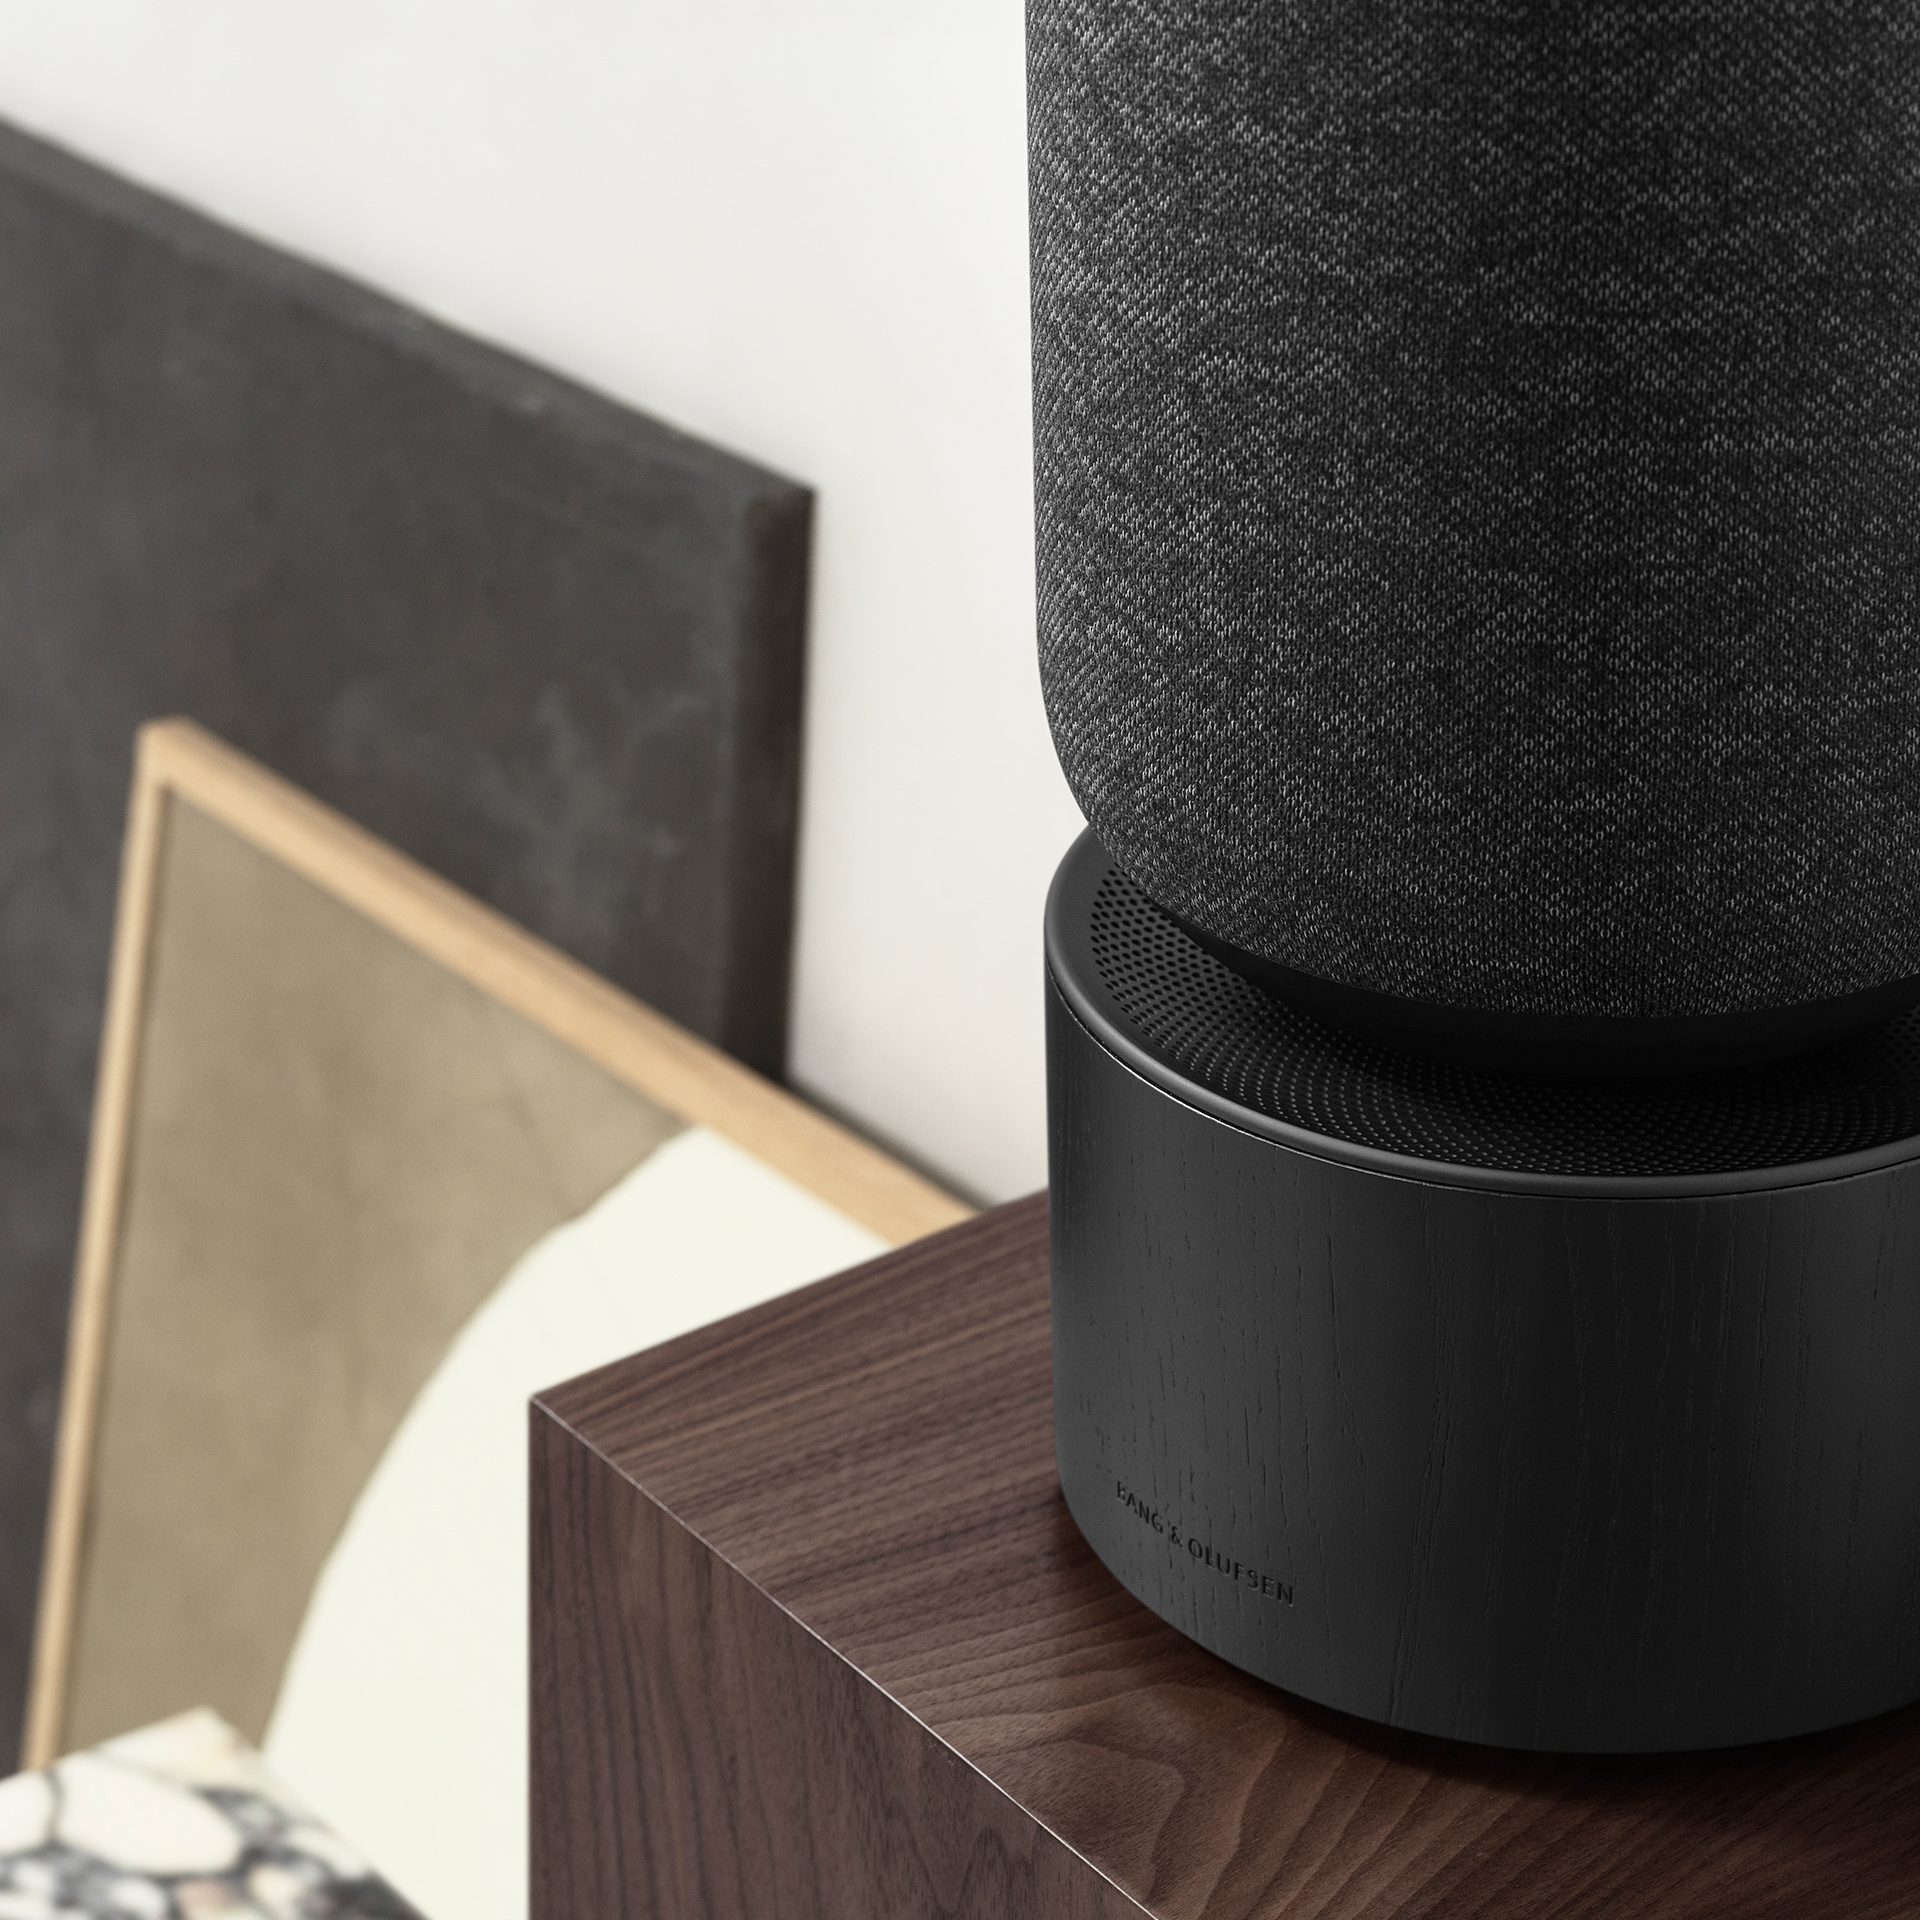 Beosound Balance Black on wooden shelf